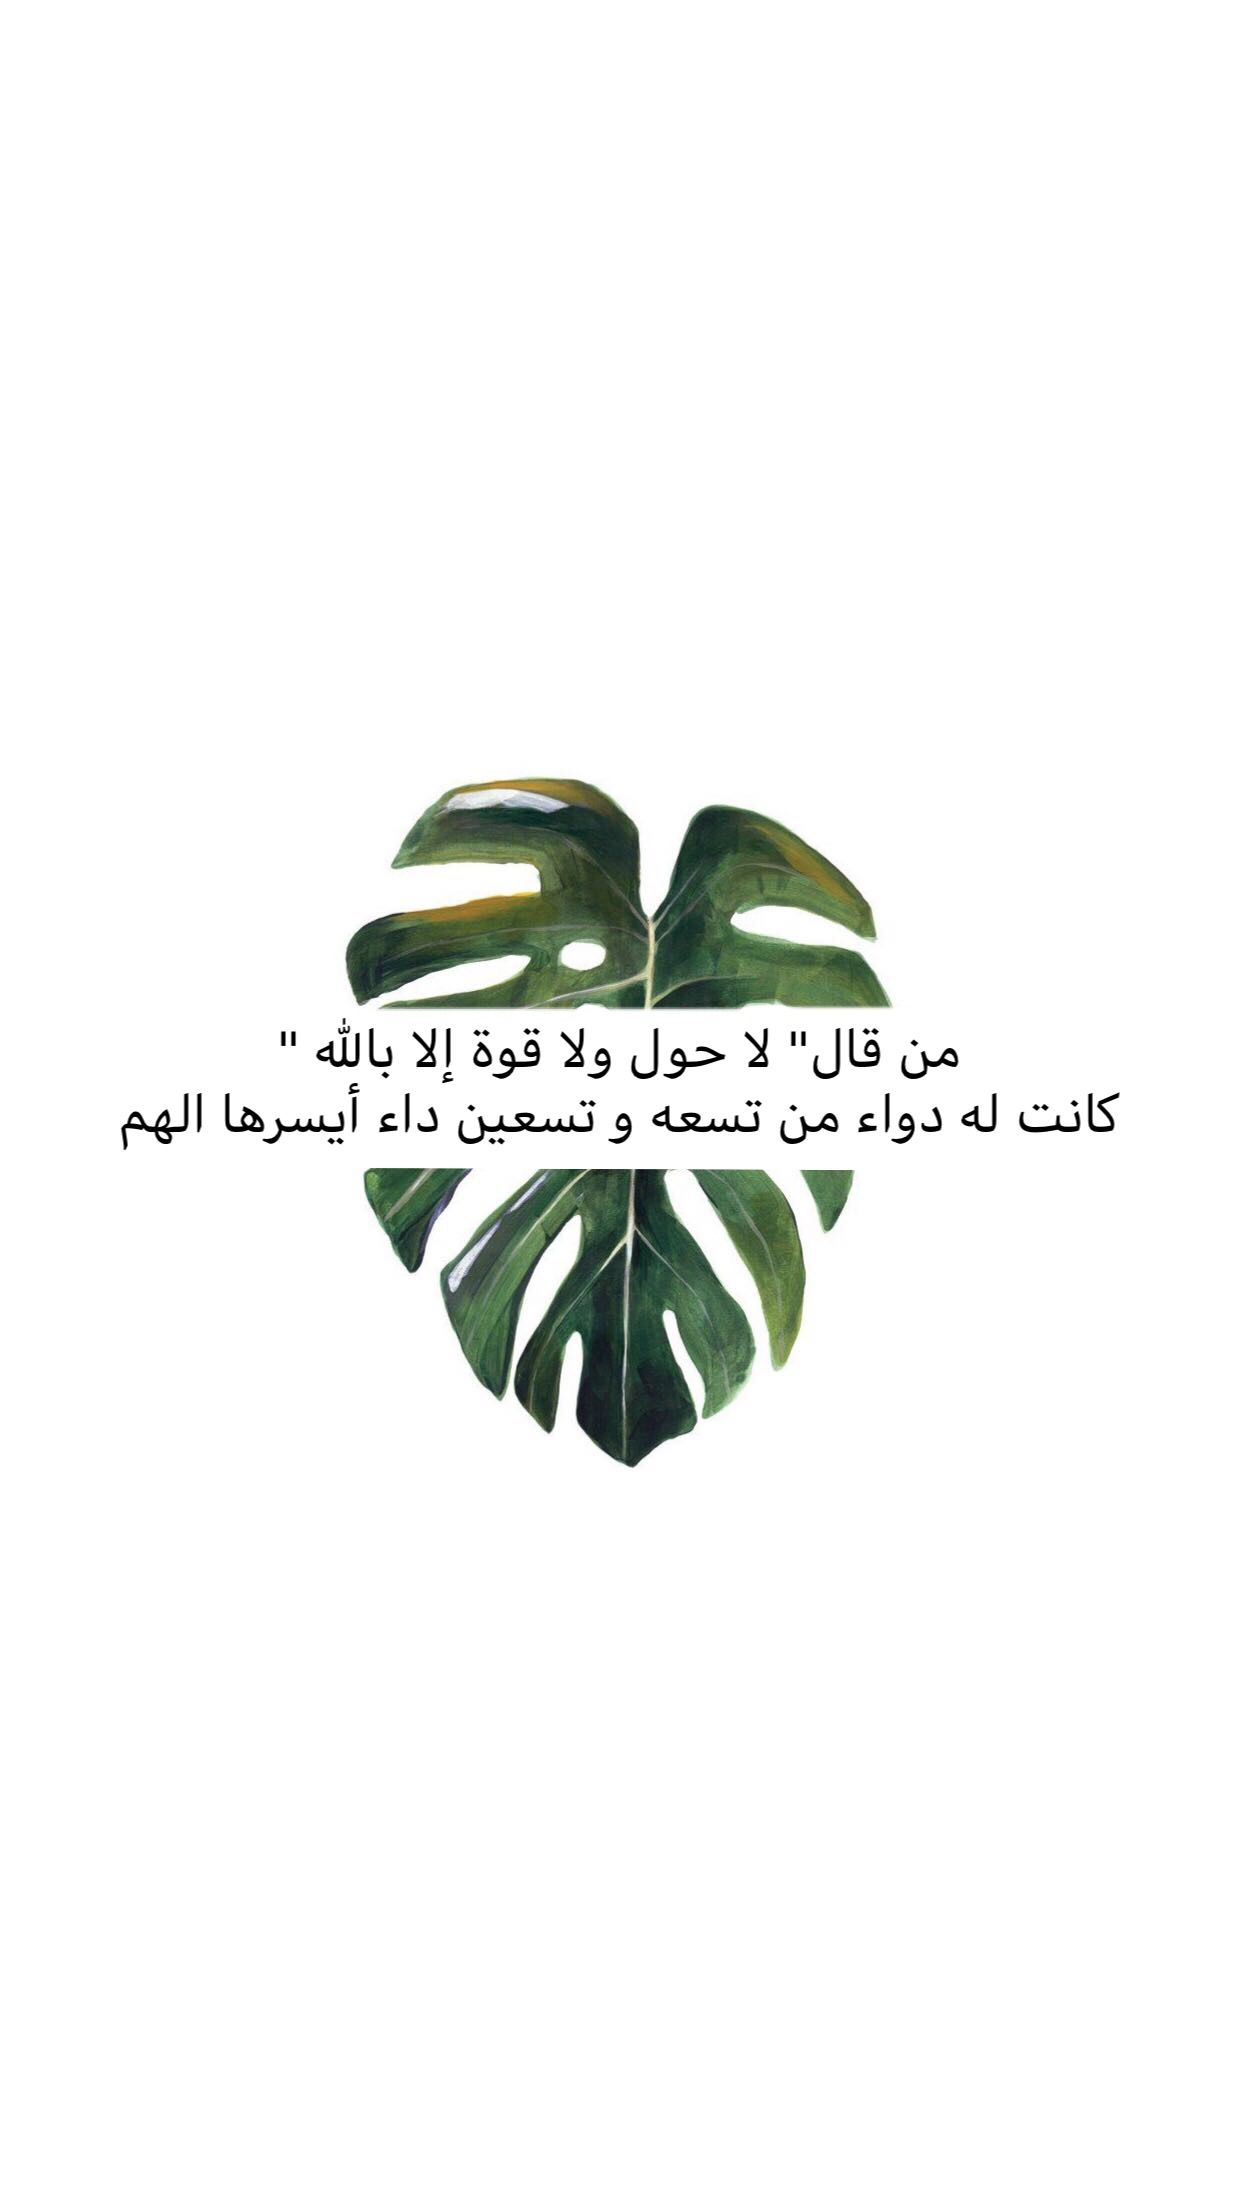 Pin By Meem On Islam Beautiful Quran Quotes Islamic Quotes Wallpaper Quran Quotes